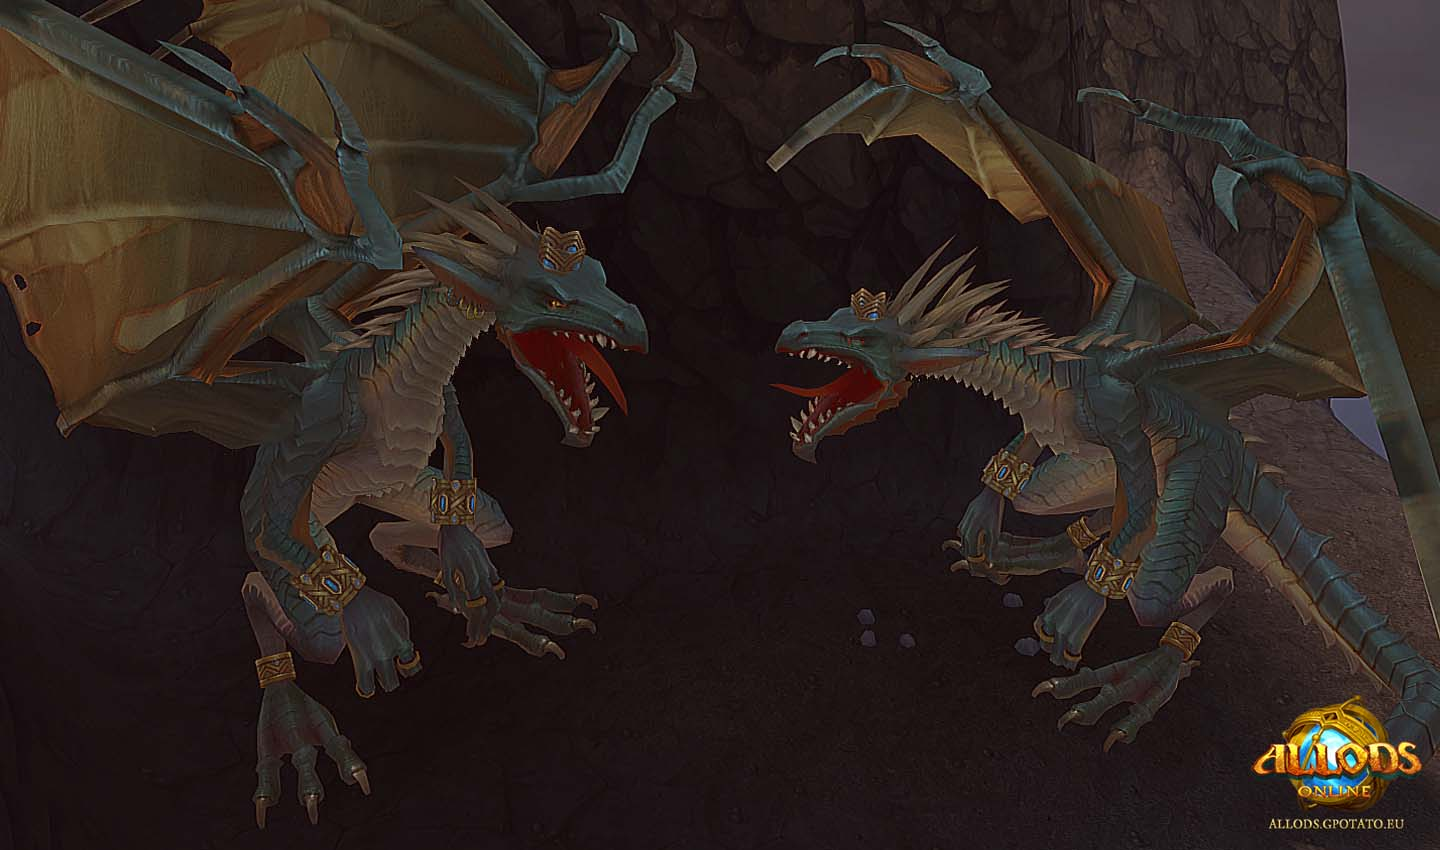 allods-screenshot_dragons.jpg